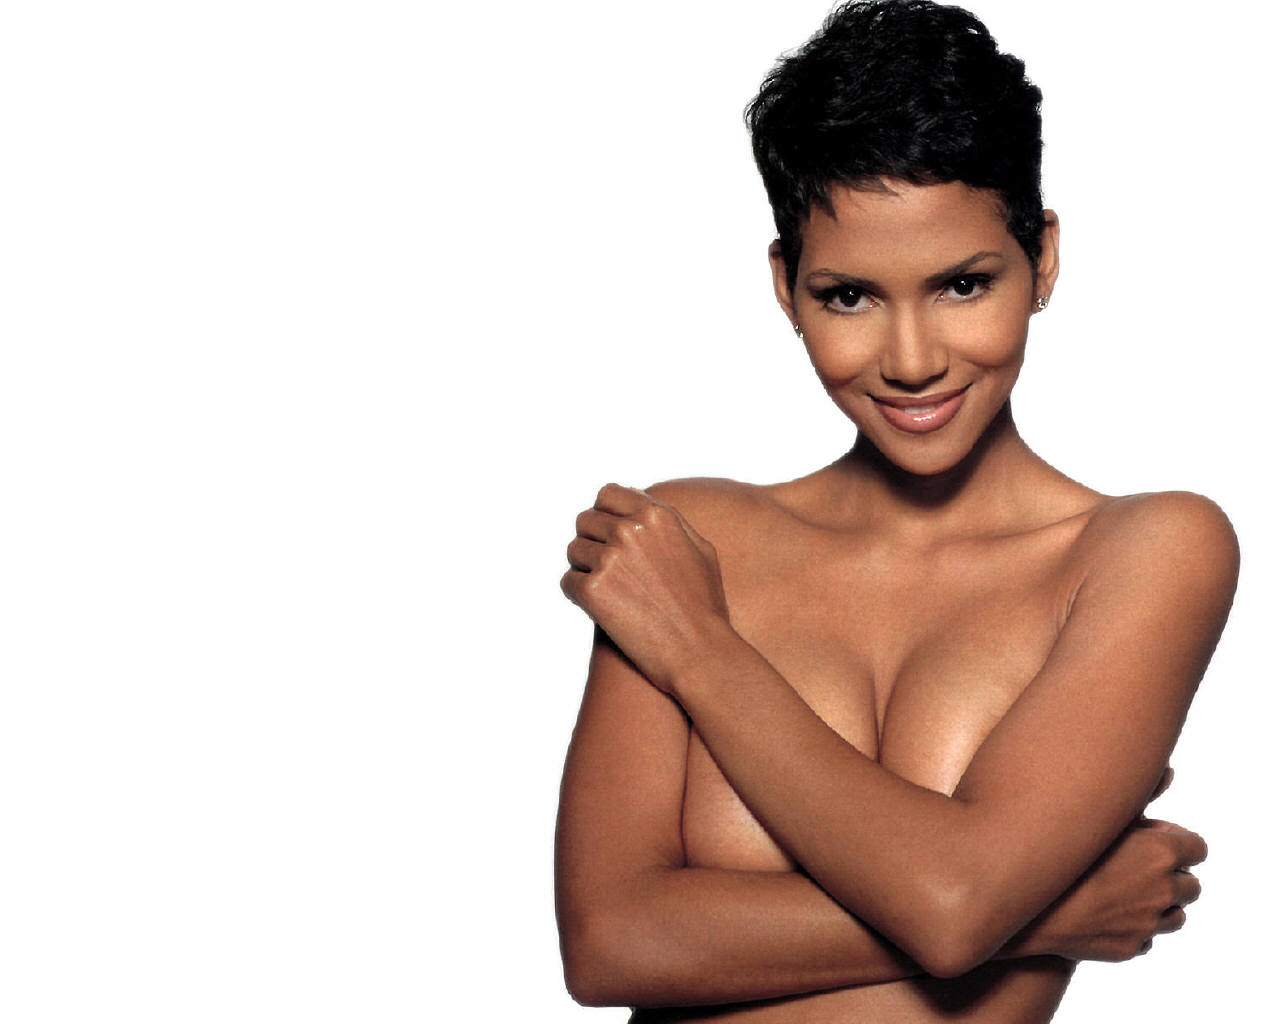 Actress Hot Pictures & wallpapers: Halle Berry hot images ever: taaratoranam.blogspot.com/2012/07/halle-berry-hot-images-ever.html